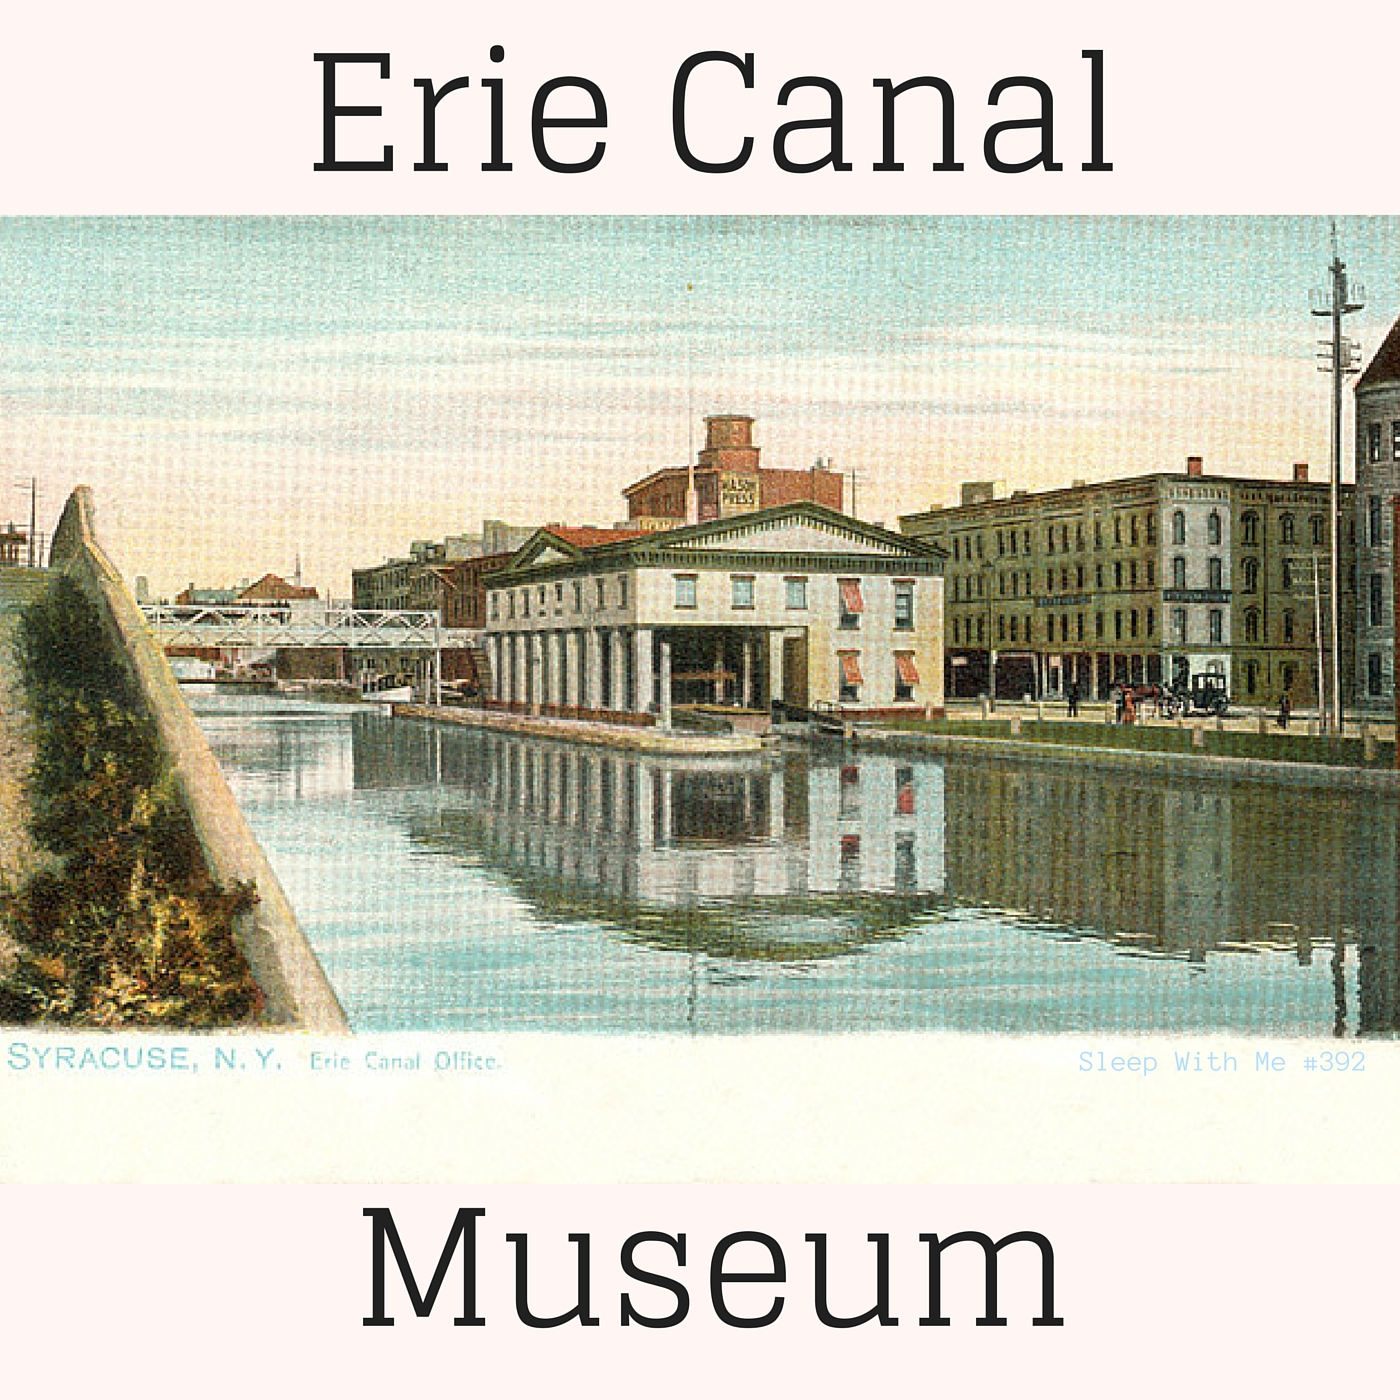 Erie Canal Museum | Sleep With Me #392